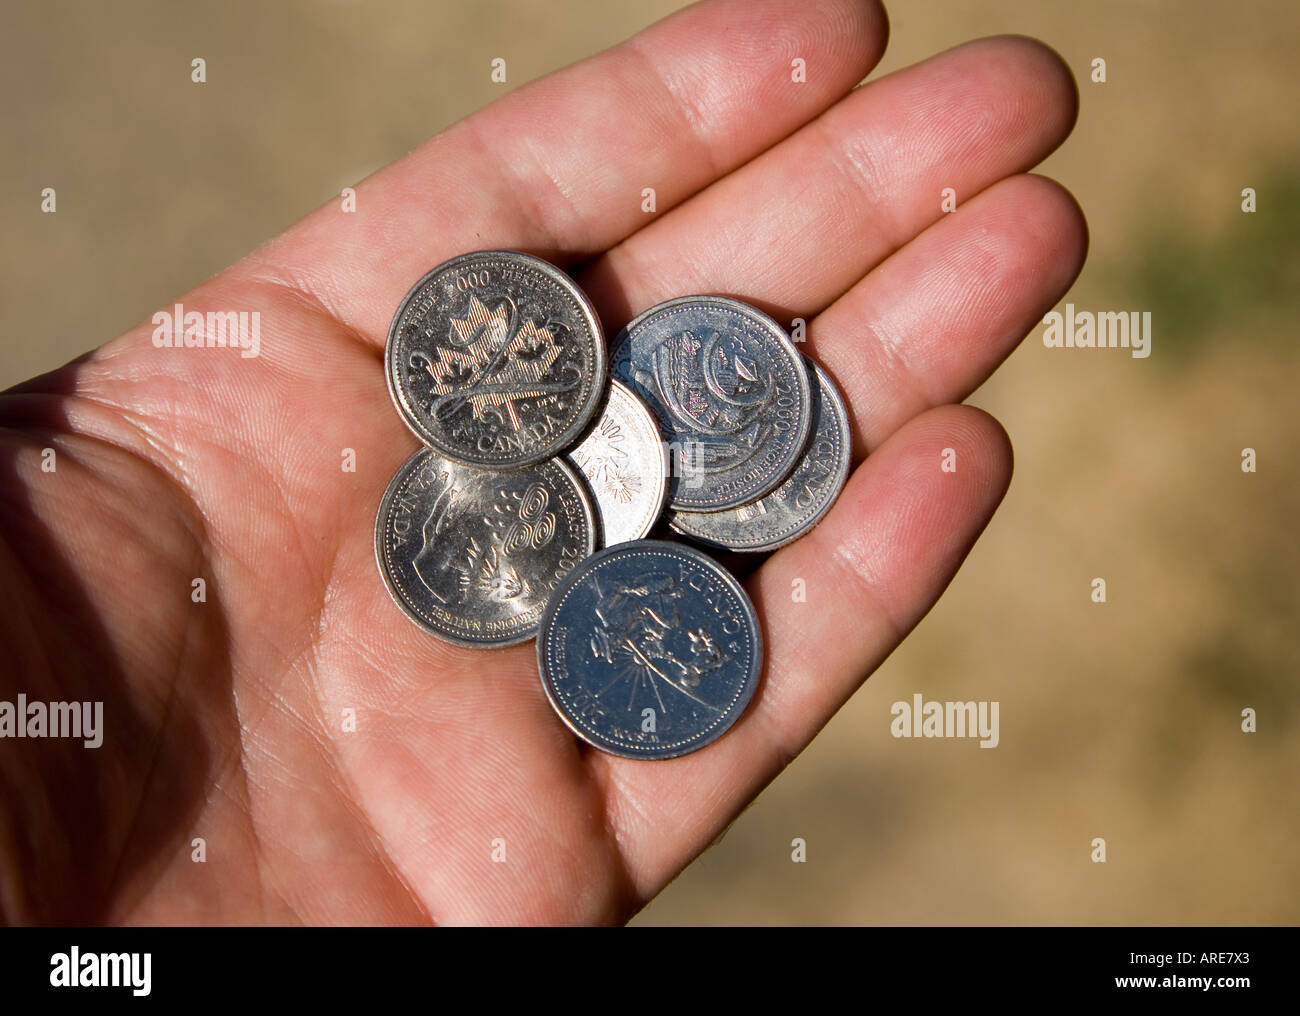 Canadian millennium commemorative coins in palm of hand Canada - Stock Image